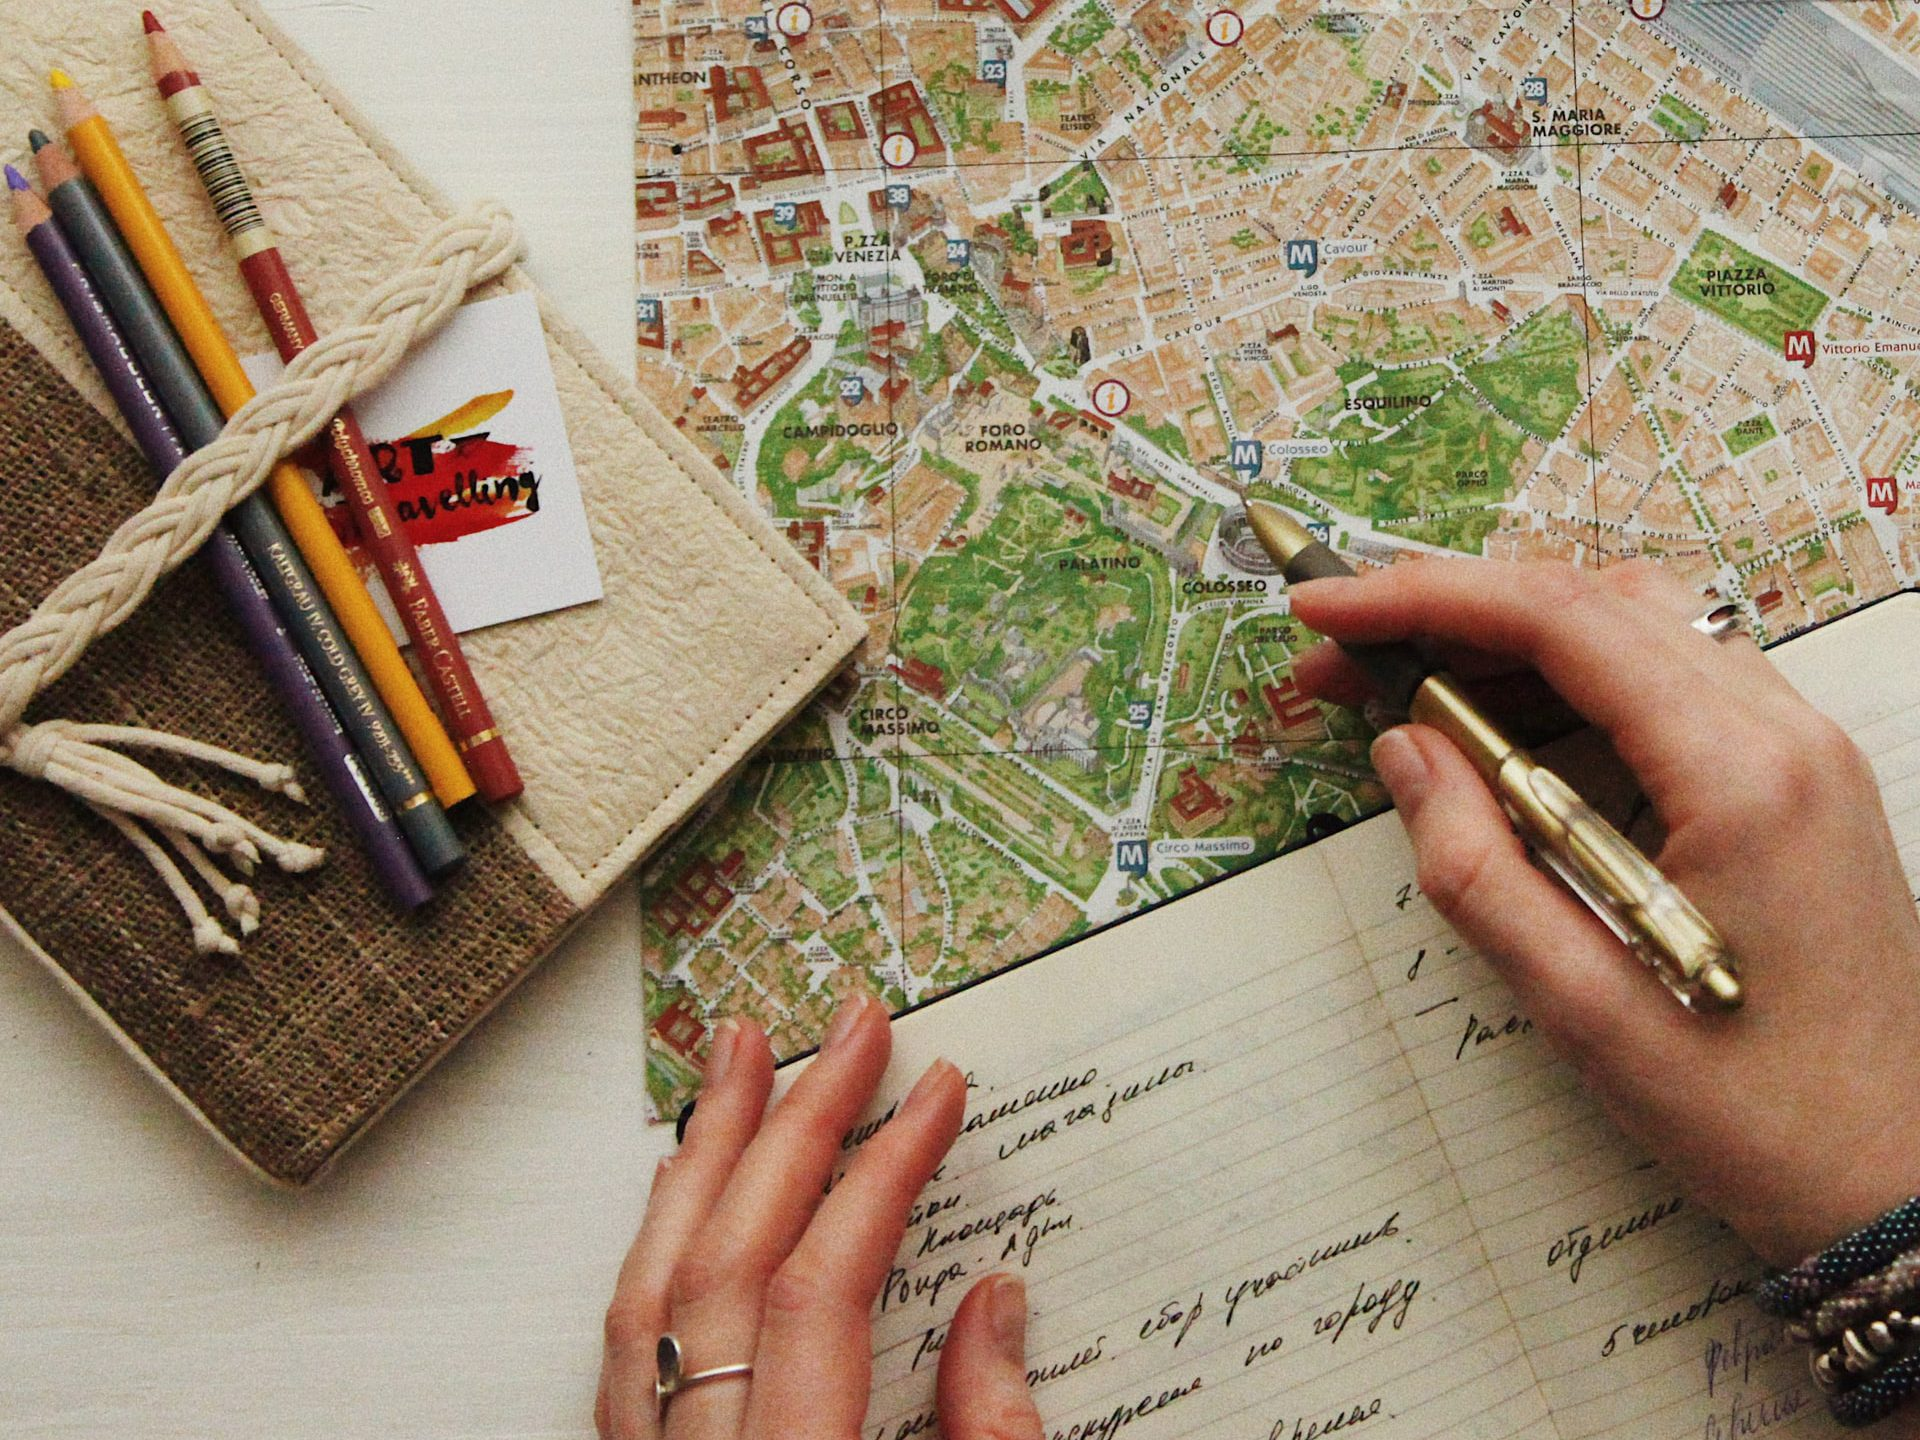 Mobile apps as enablers of trip organization